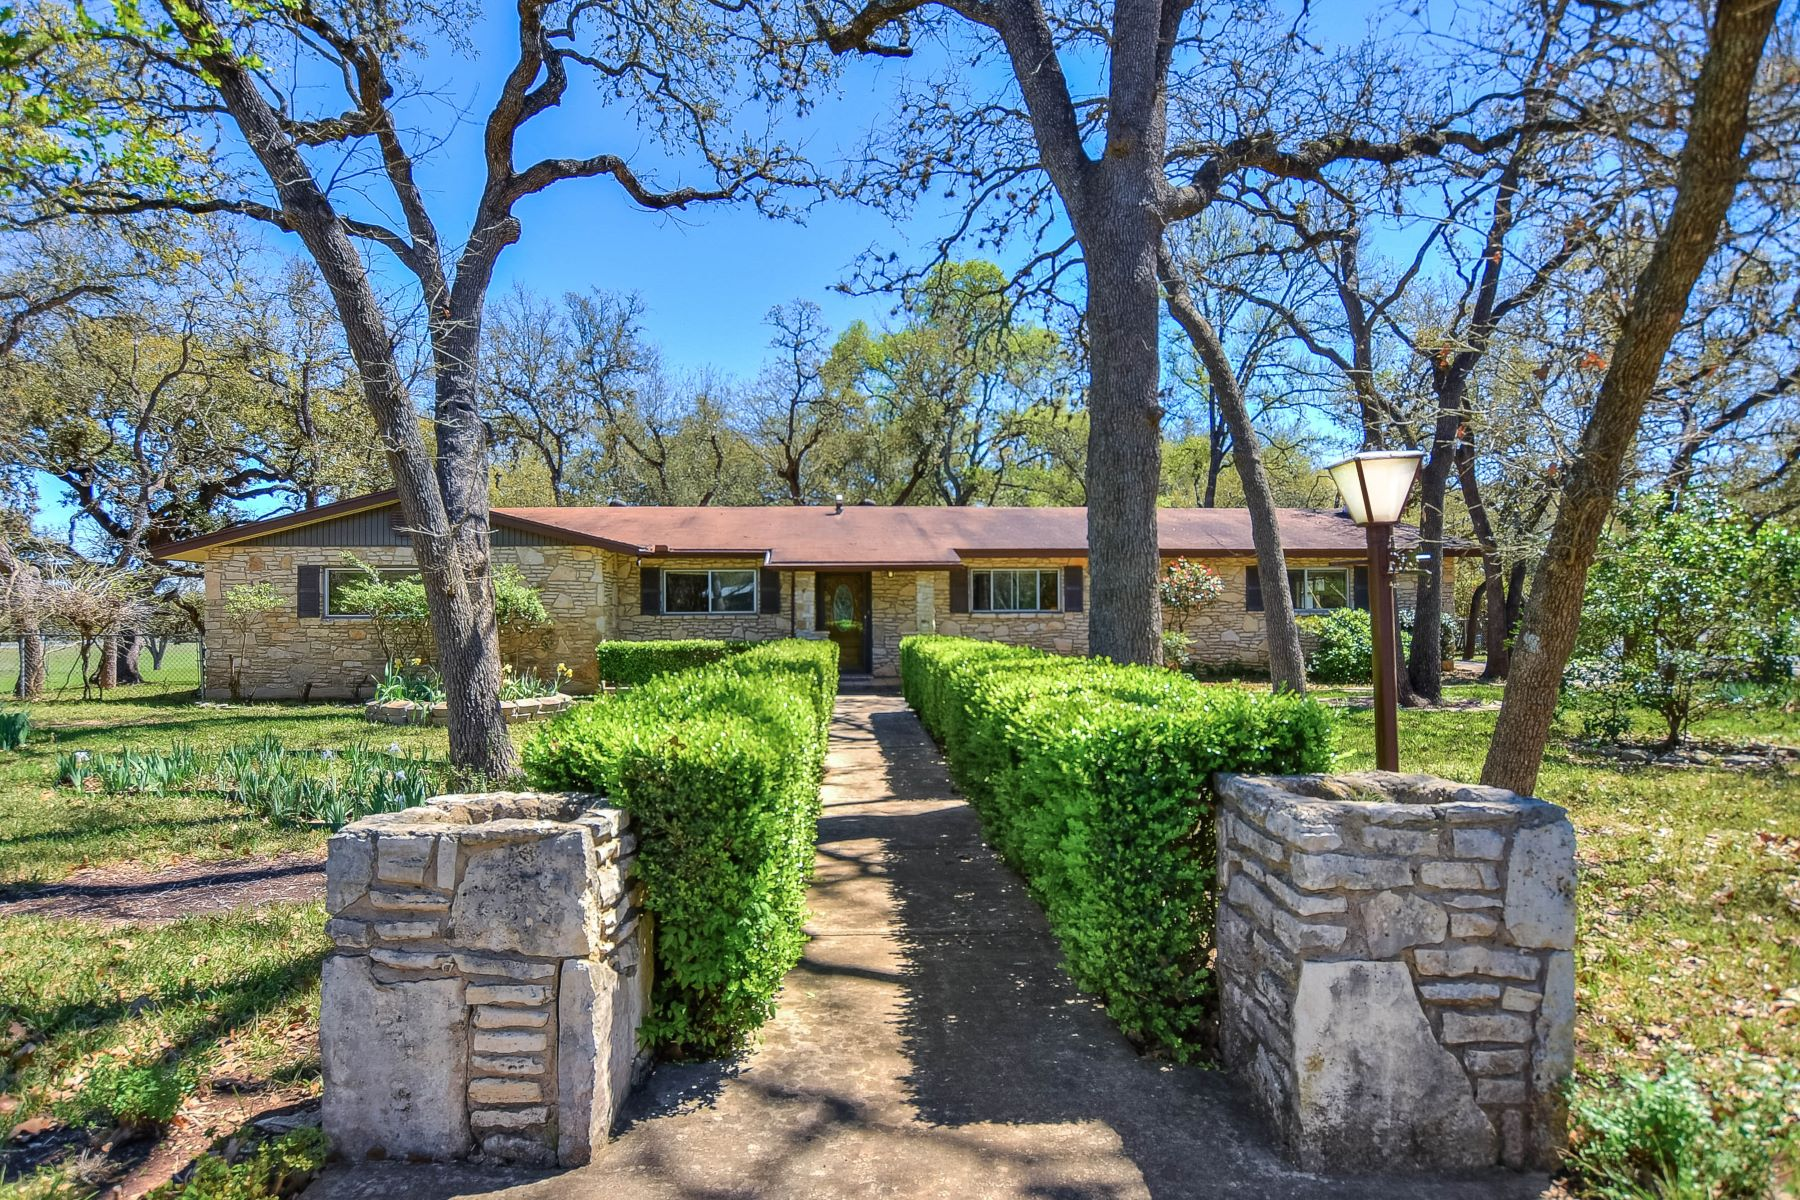 Single Family Home for Sale at Home in Stagecoach Hills 25702 Broad Oak Trail San Antonio, Texas 78255 United States